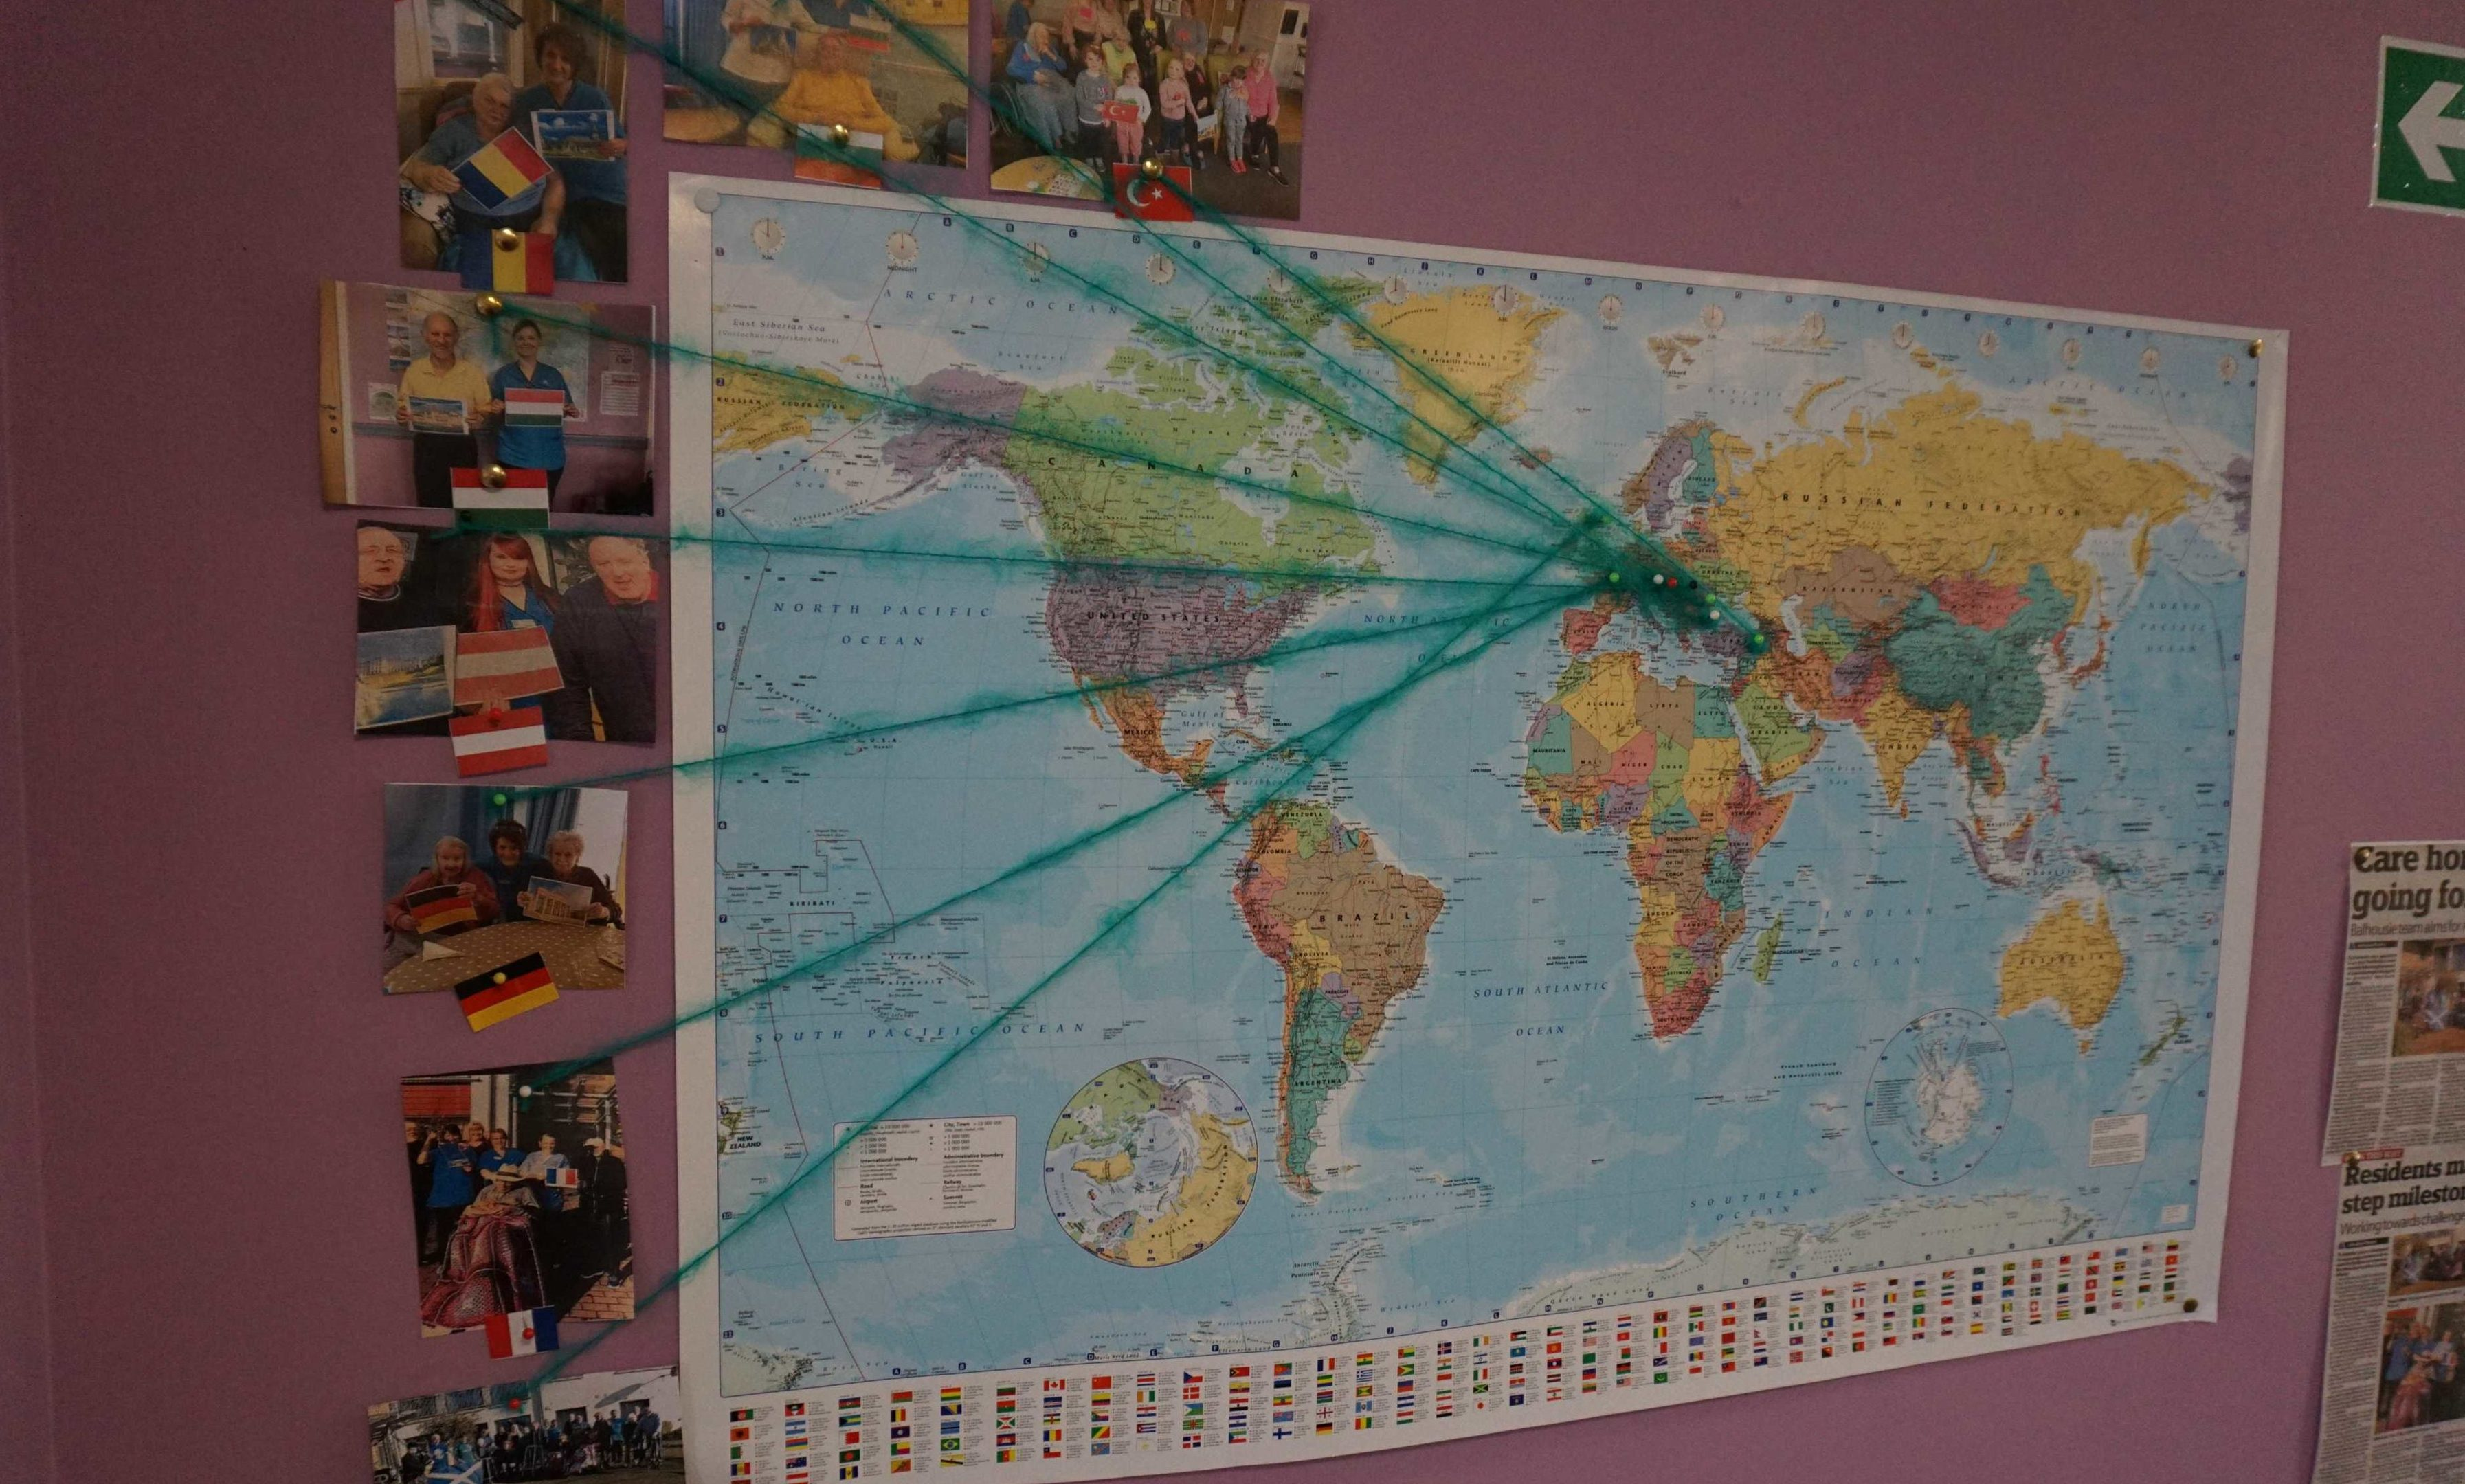 Residents kept a map of the destinations covered during their virtual world tour